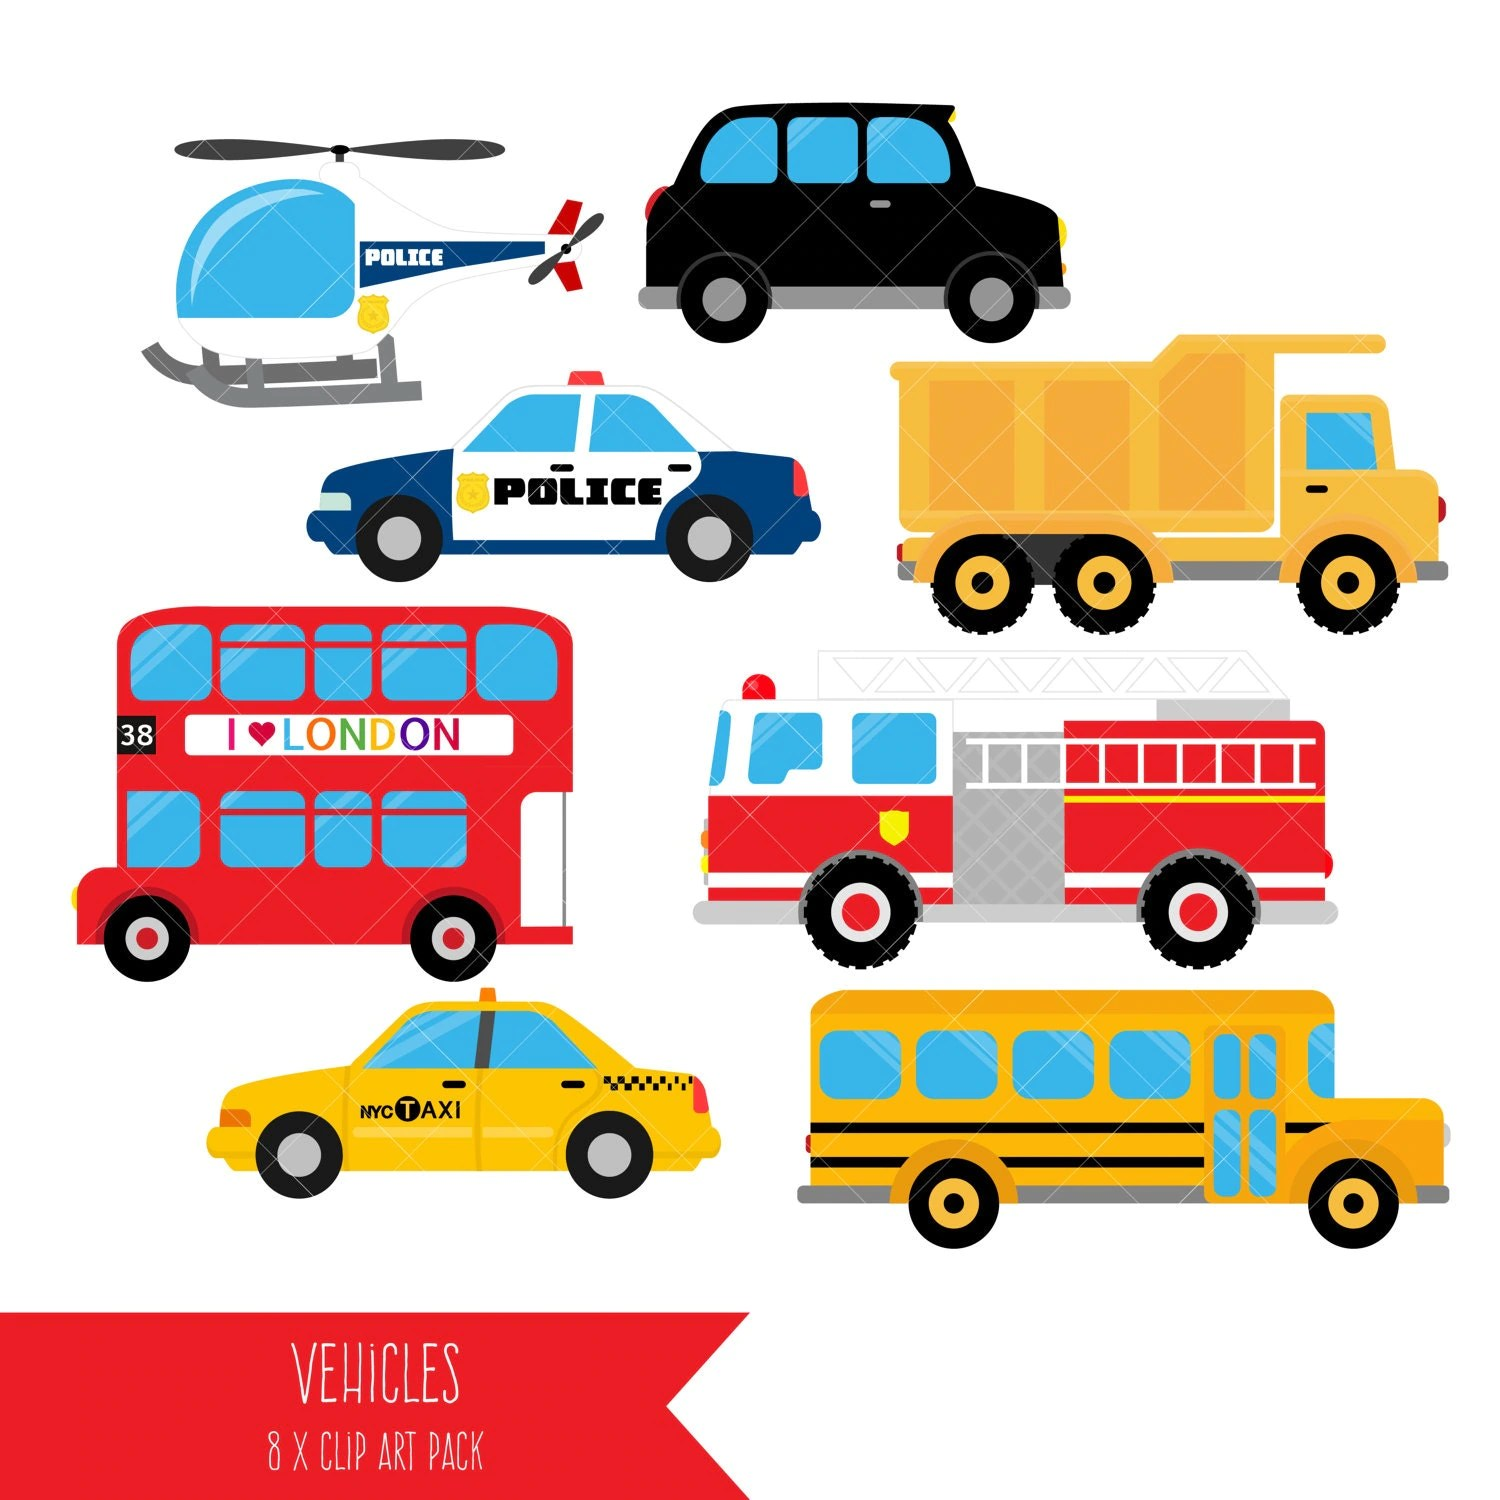 vehicle diagram clip art 2004 toyota corolla stereo wiring transportation clipart vehicles taxi bus fire